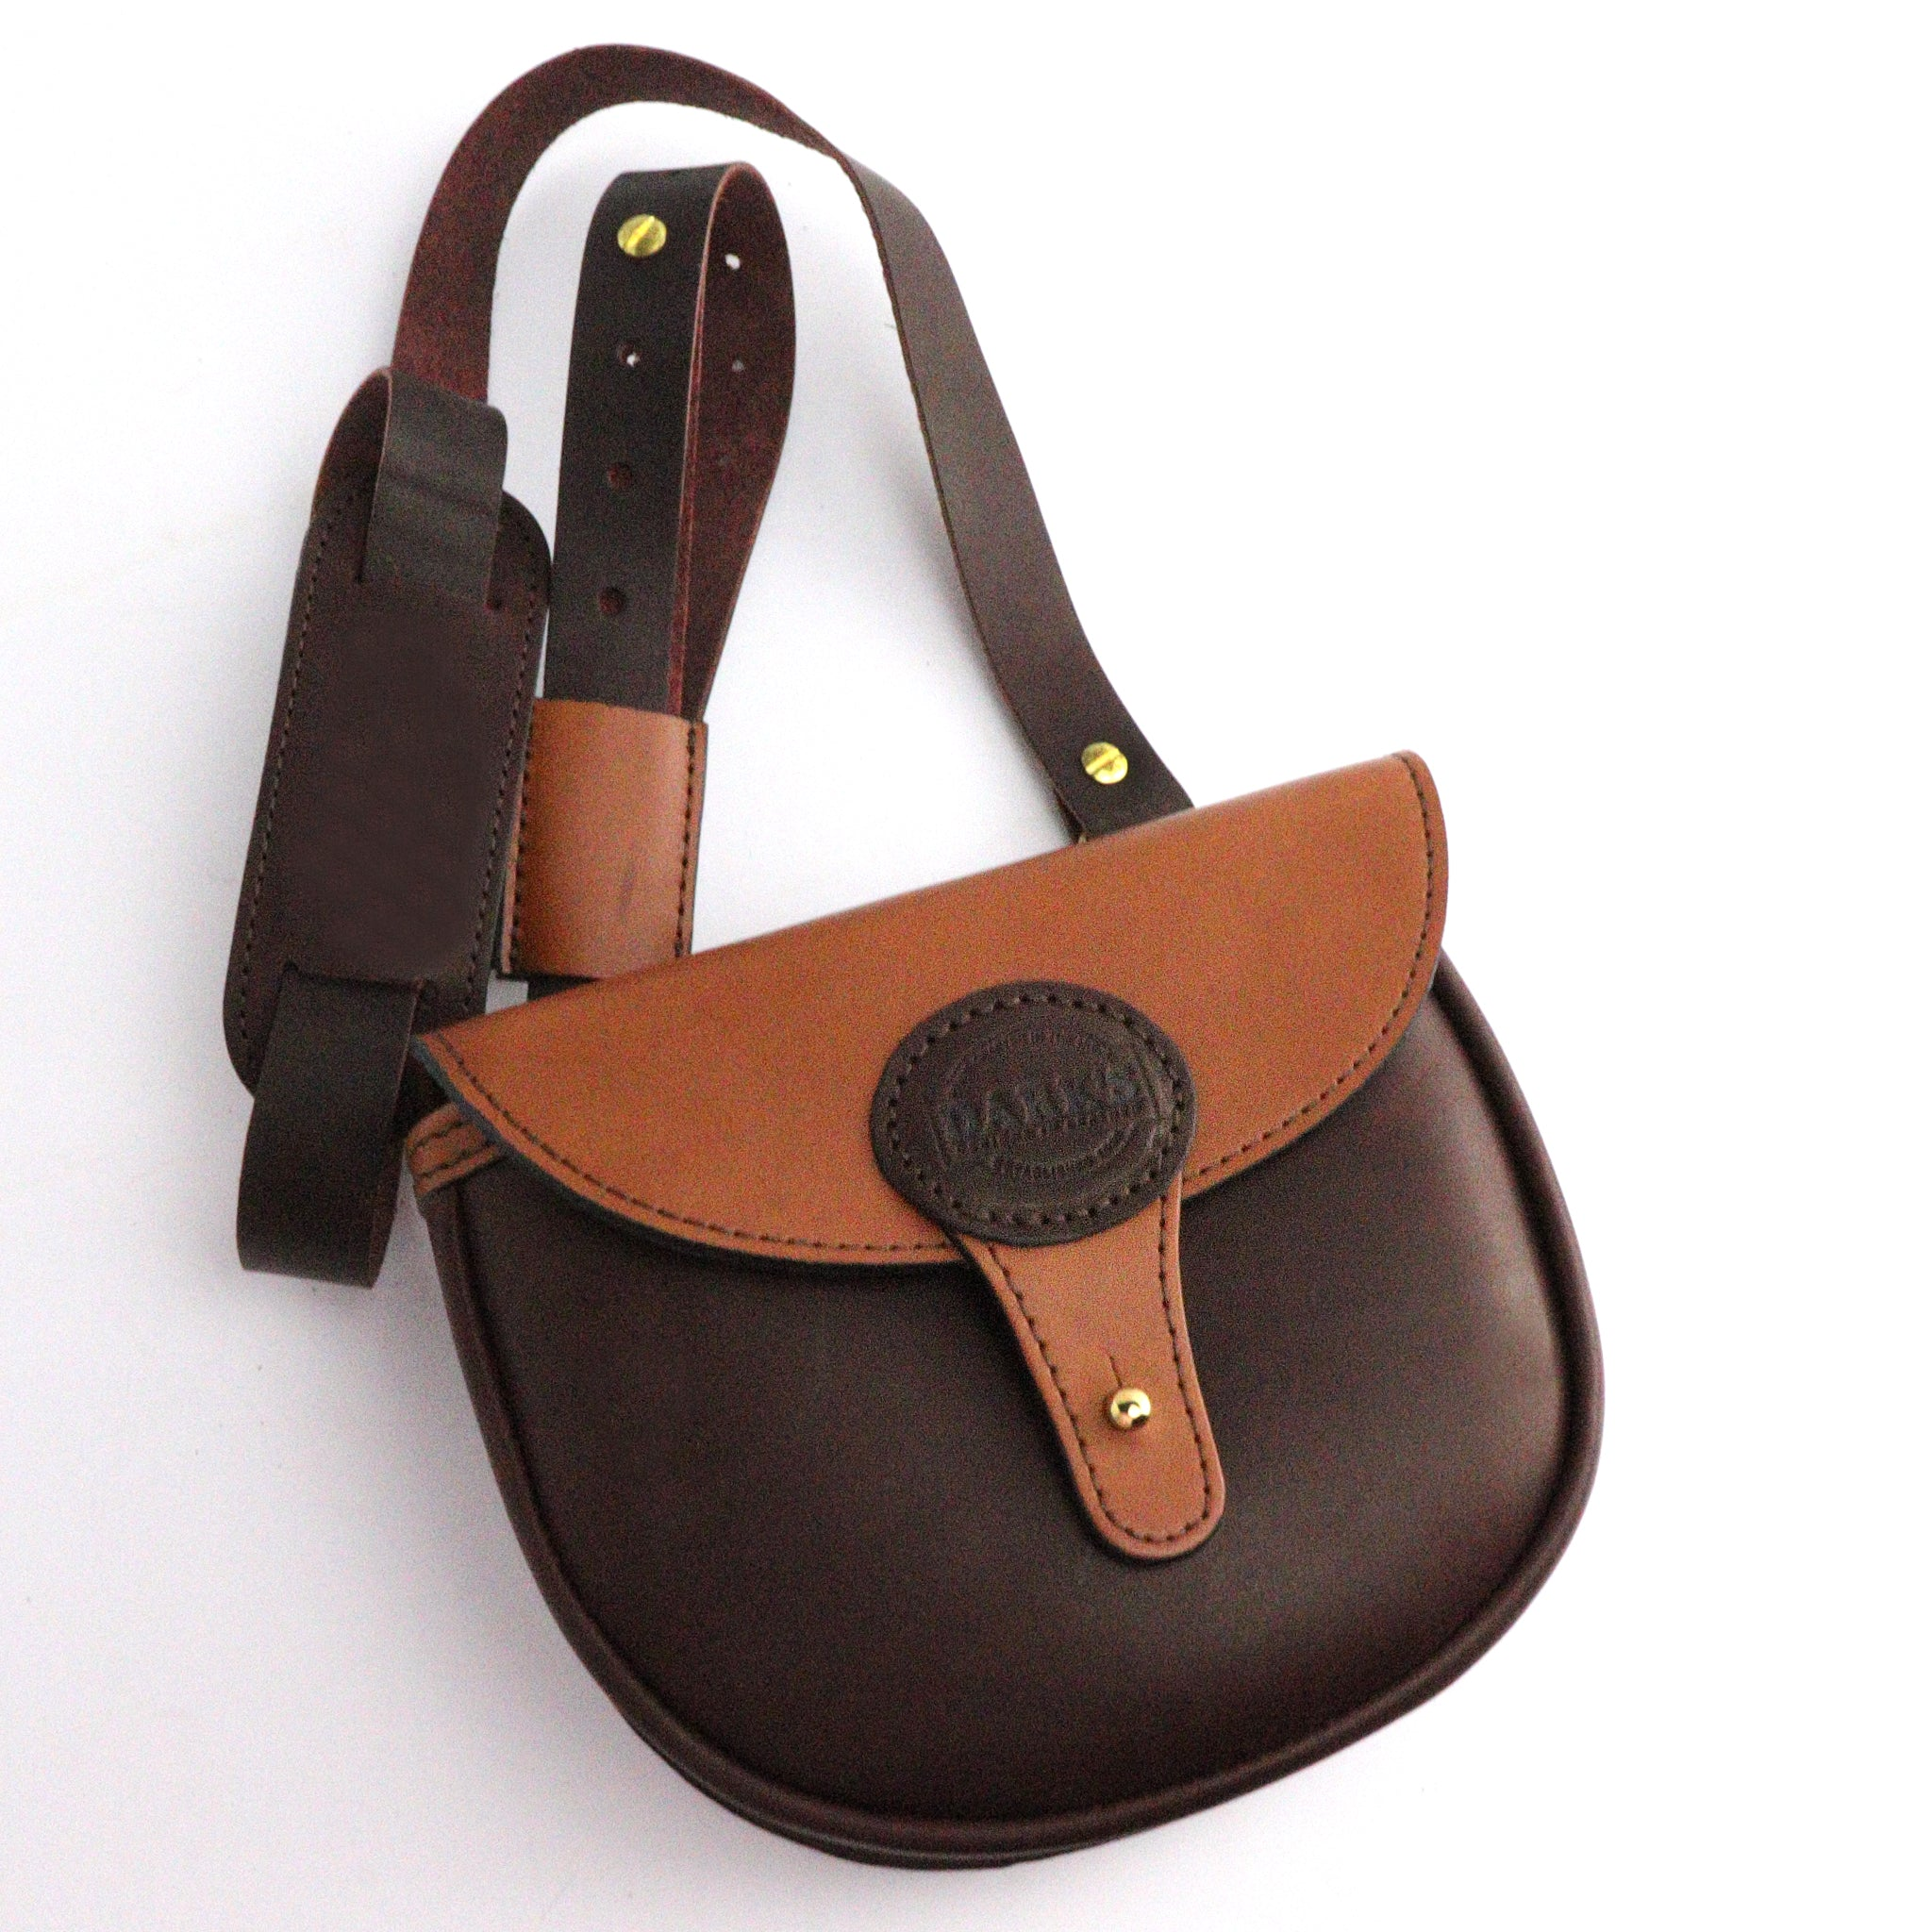 Dark's Leather - Speed Bag Shoulder Strap View